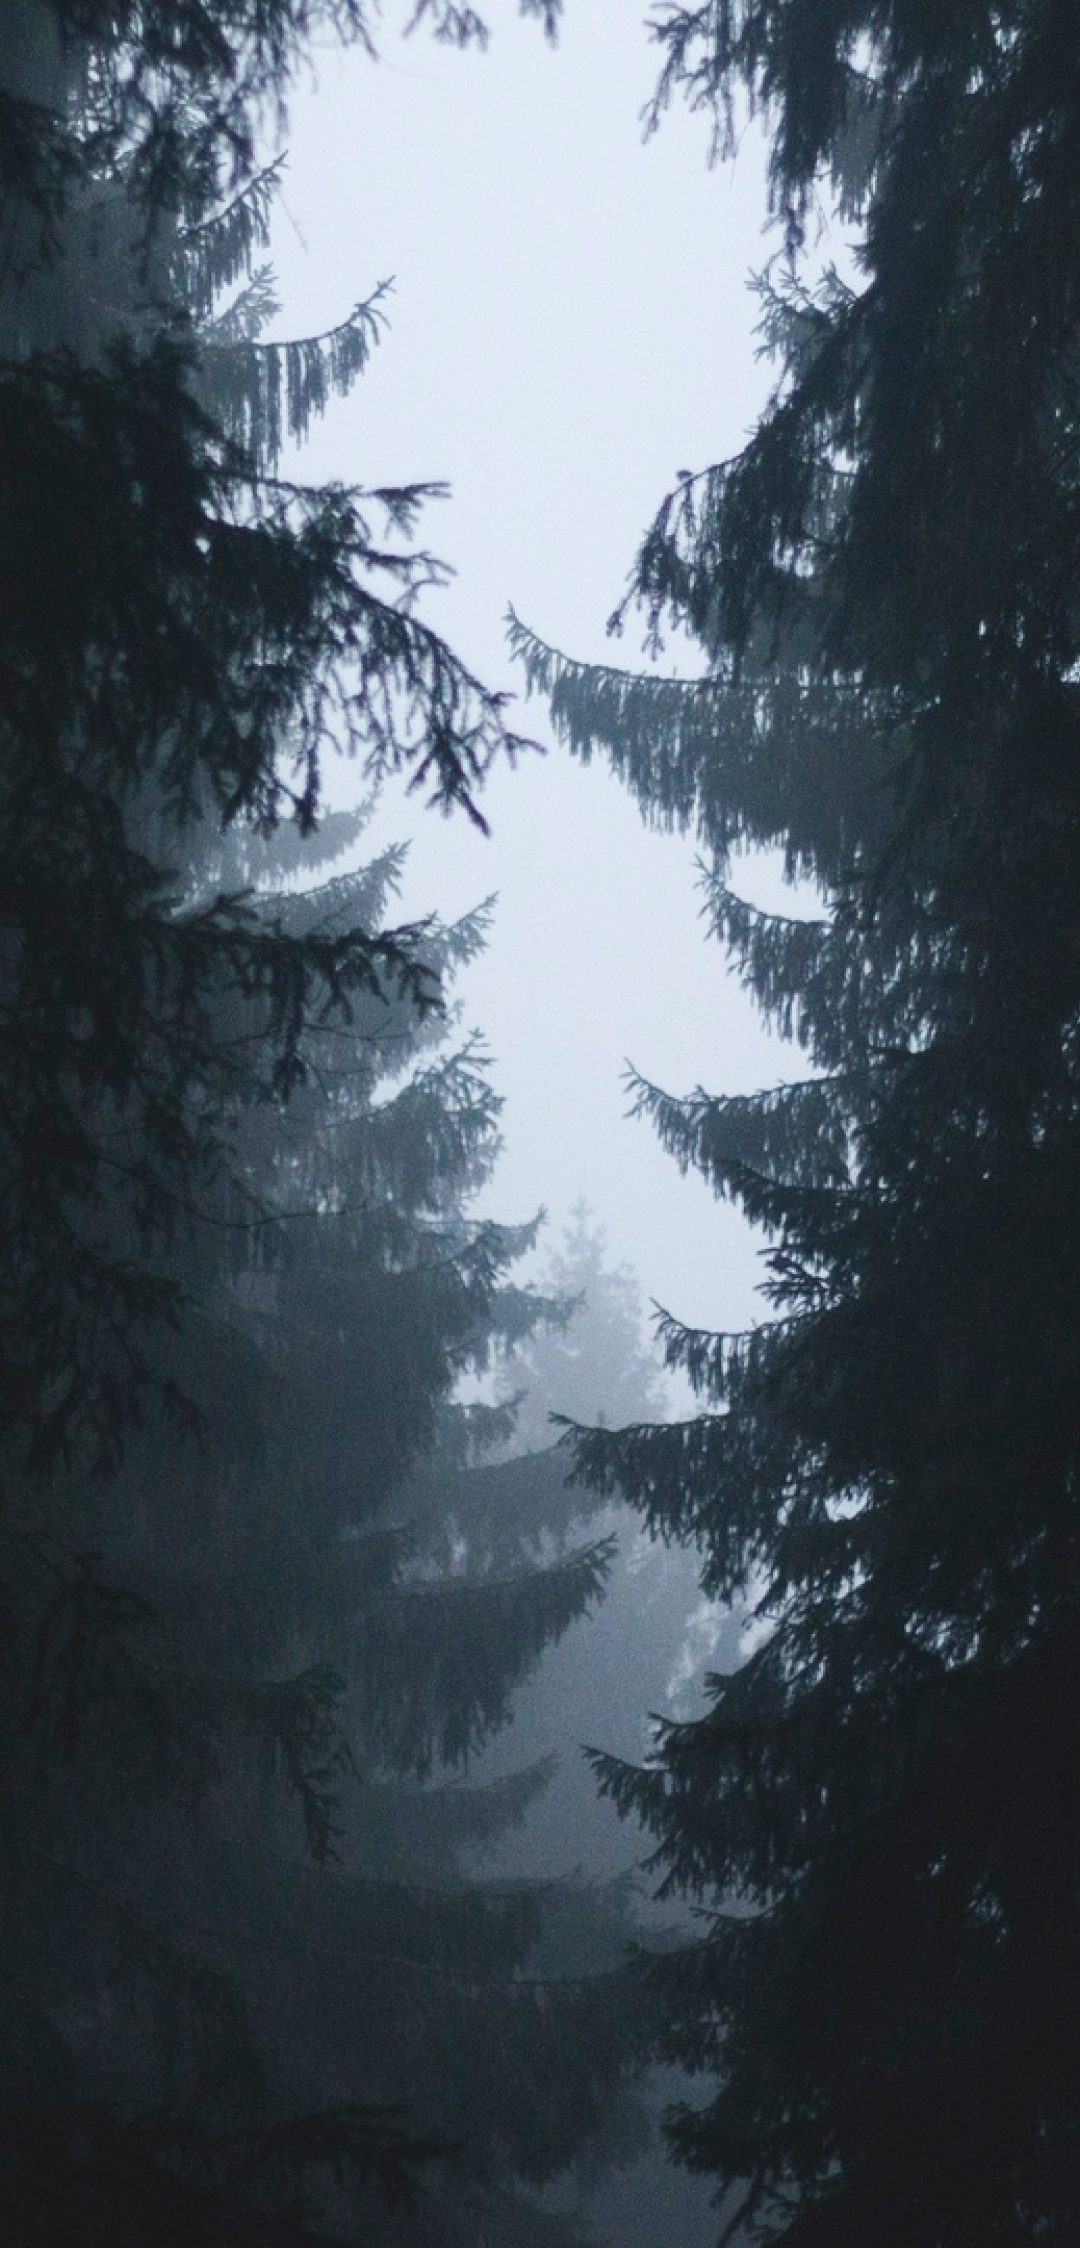 1080x2248 Misty Forest Photography 2021 1080x2248 Resolution Wallpaper Hd Nature 4k Wallpapers Images Photos And Background Wallpapers Den